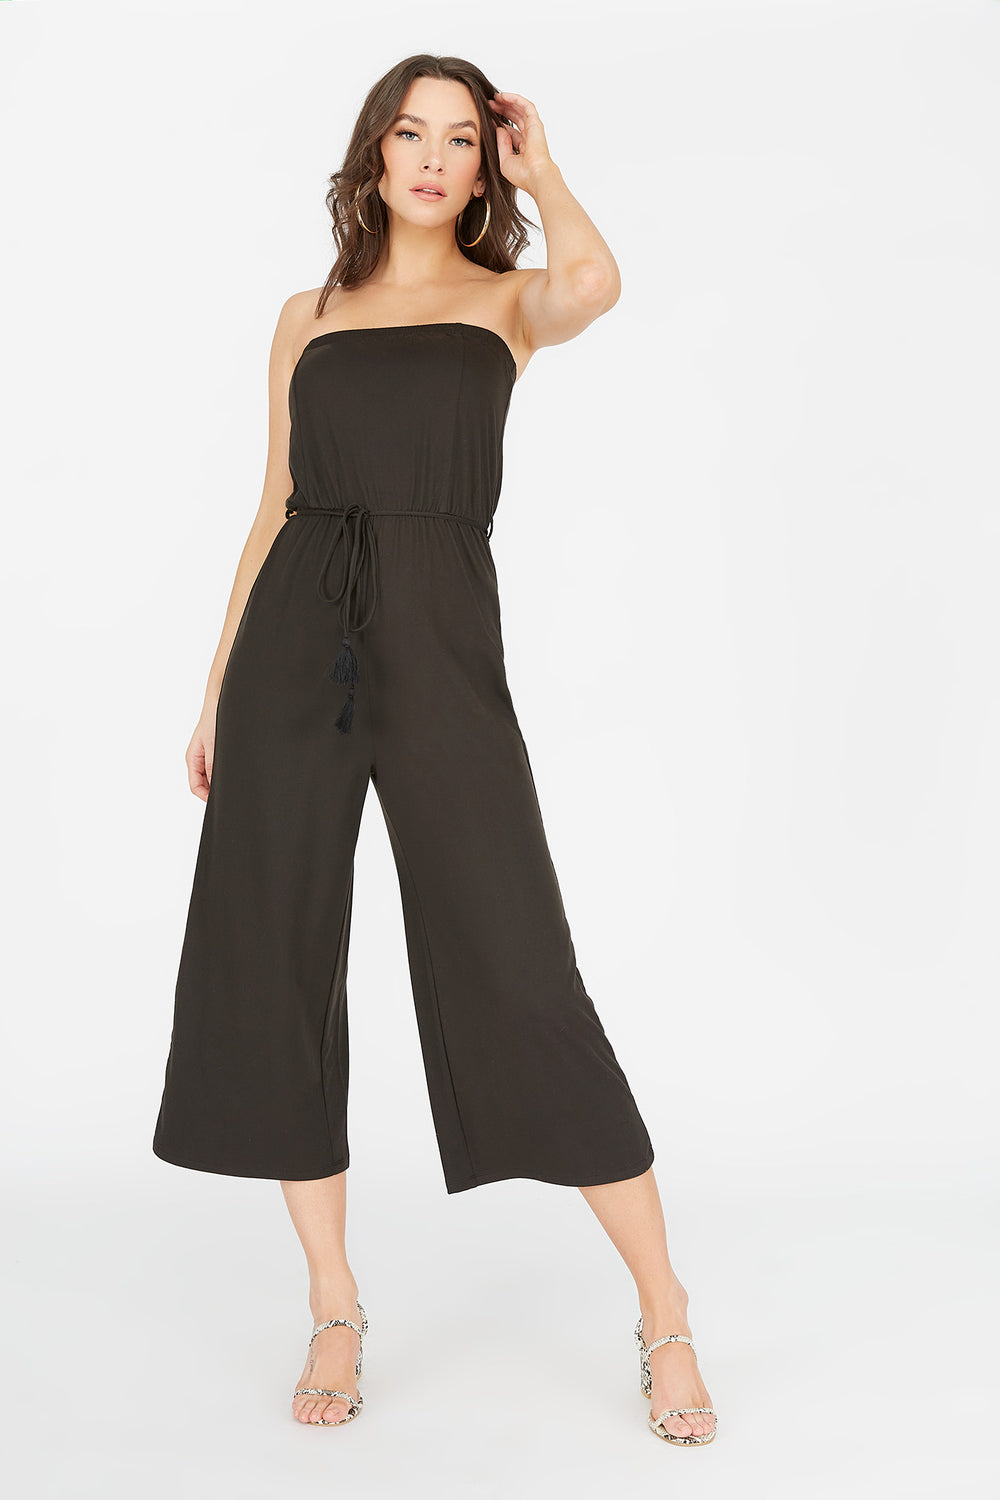 Soft Strapless Self-Tie Belted Culotte Jumpsuit Black